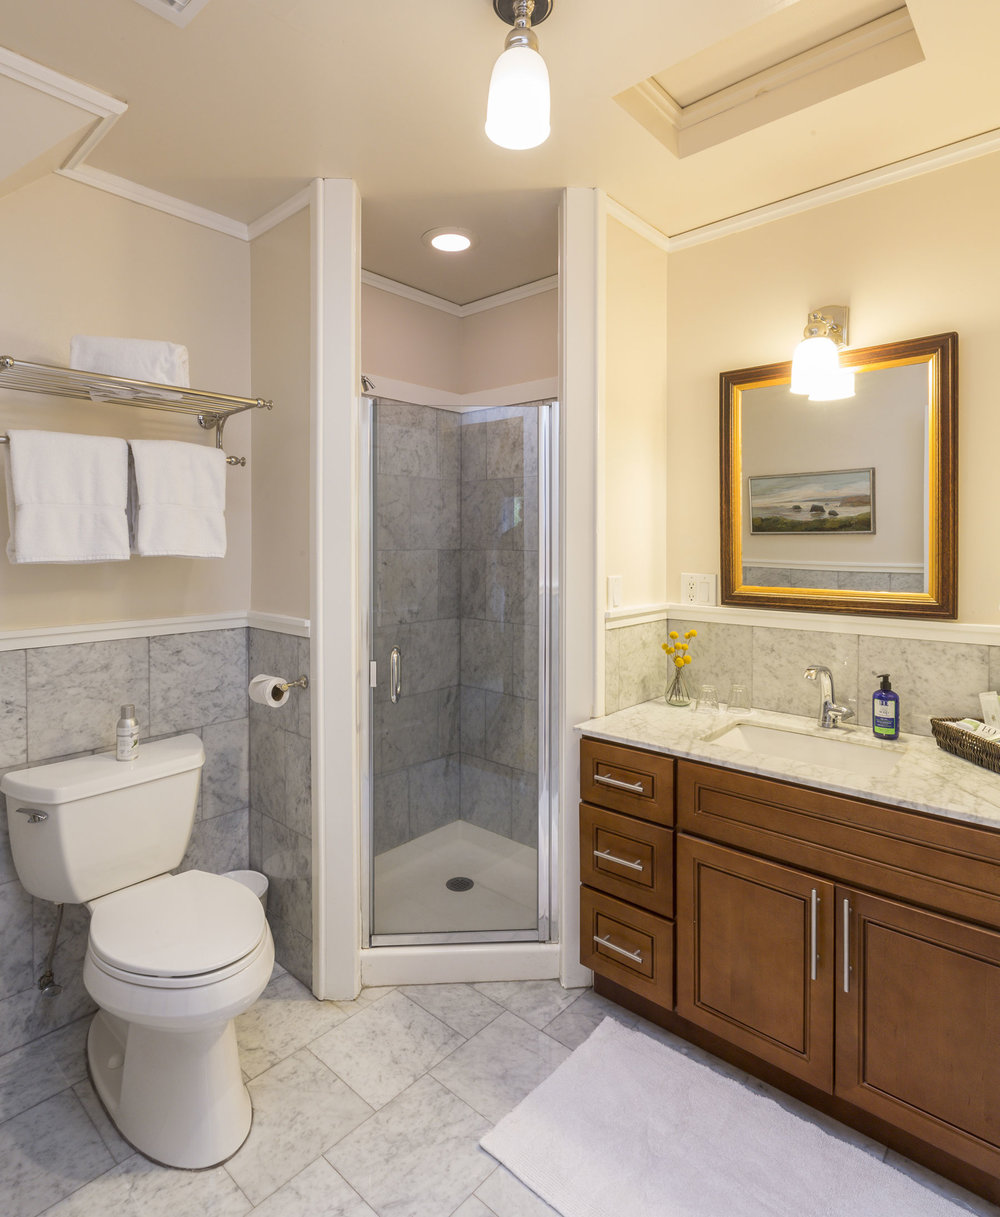 The newly remodeled bathroom in the Briar Rose room